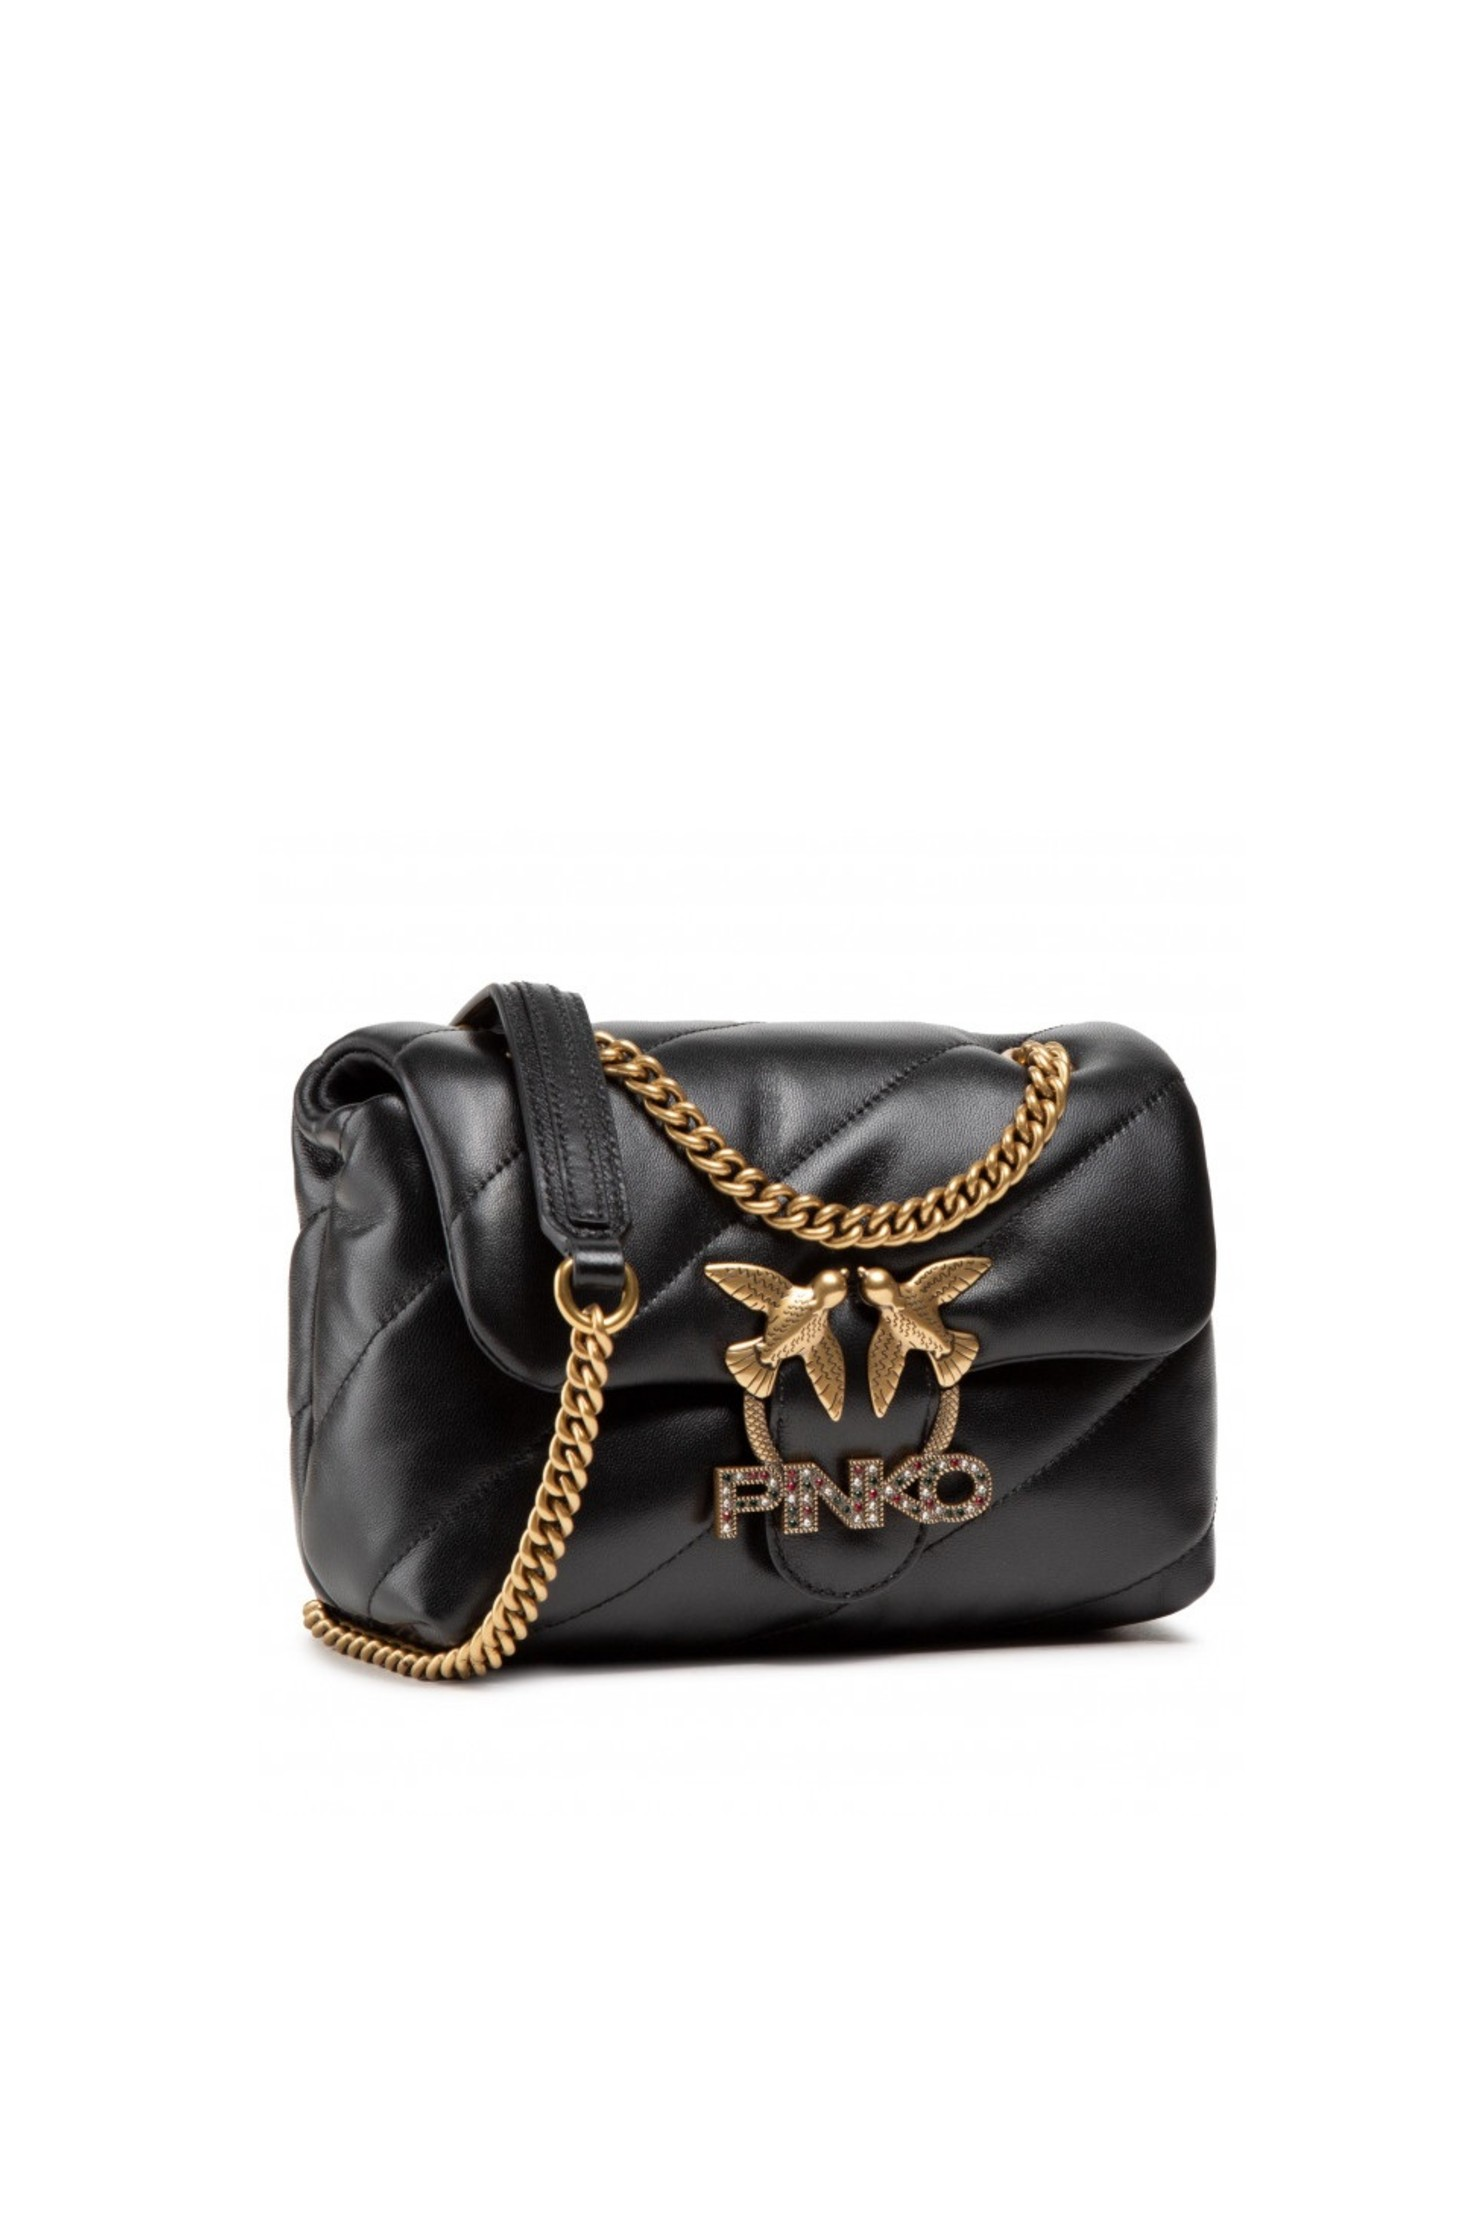 Mini Love Bag Puff Jewel Black